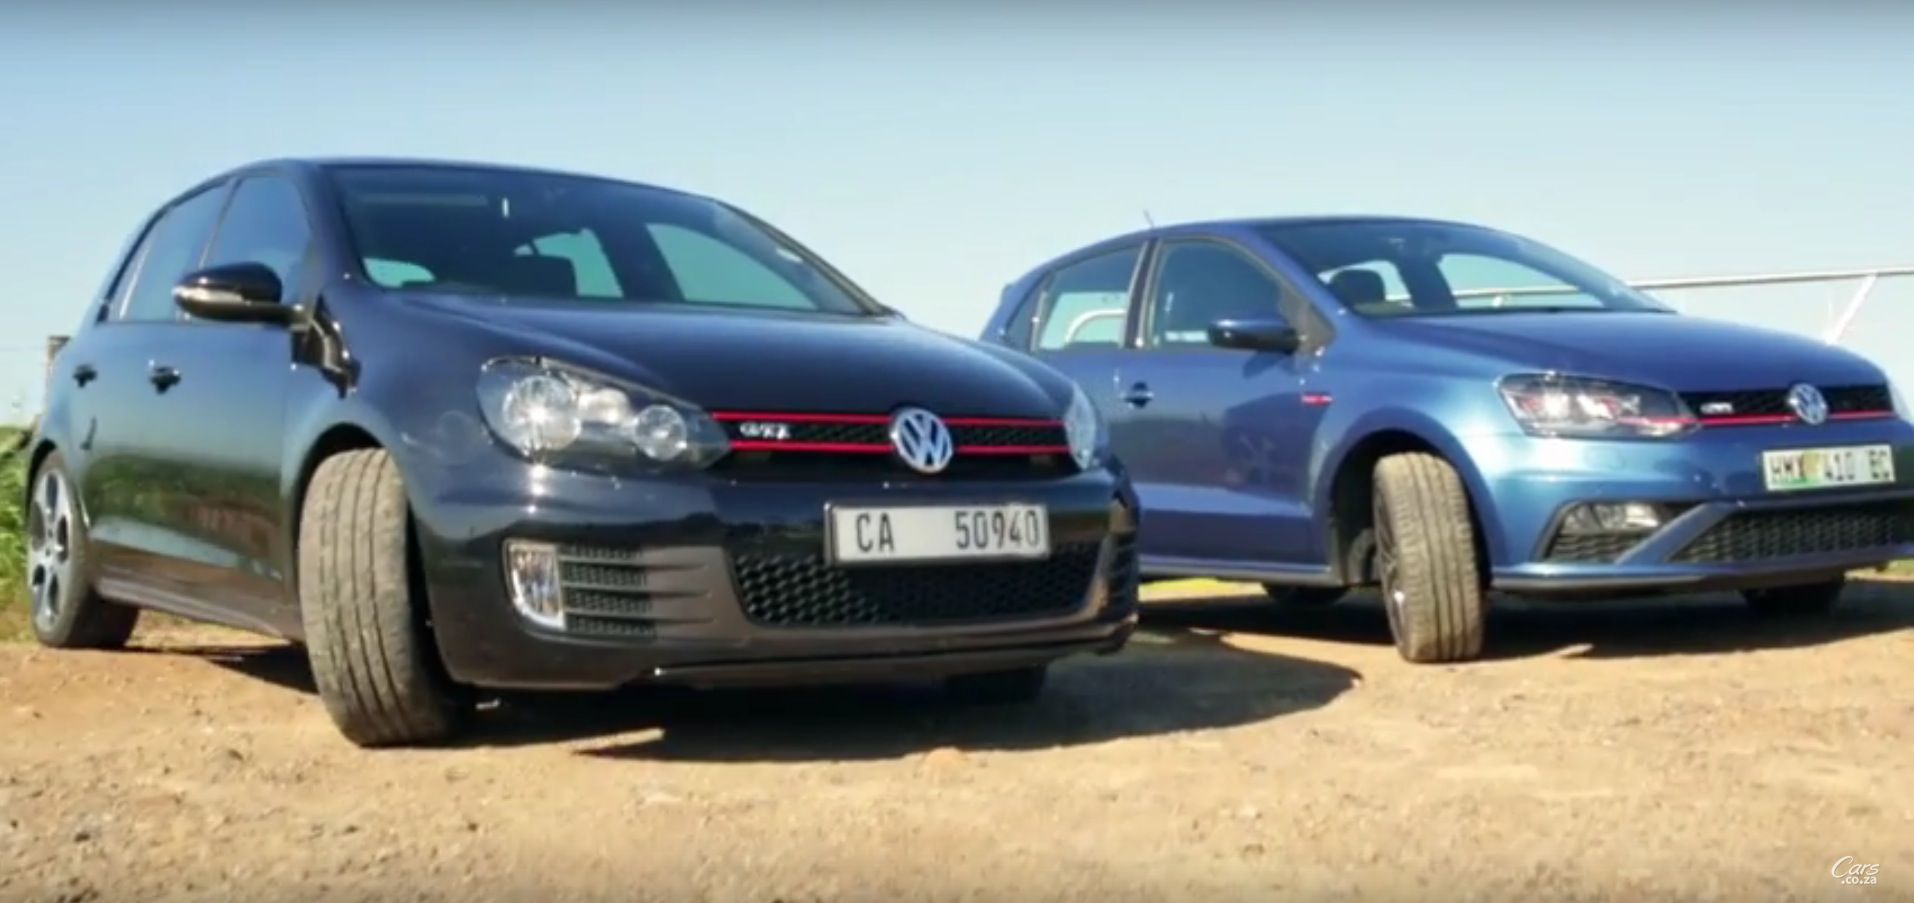 2017 Volkswagen Polo Gti Or Golf 6 Old Clic Vs New And Improved